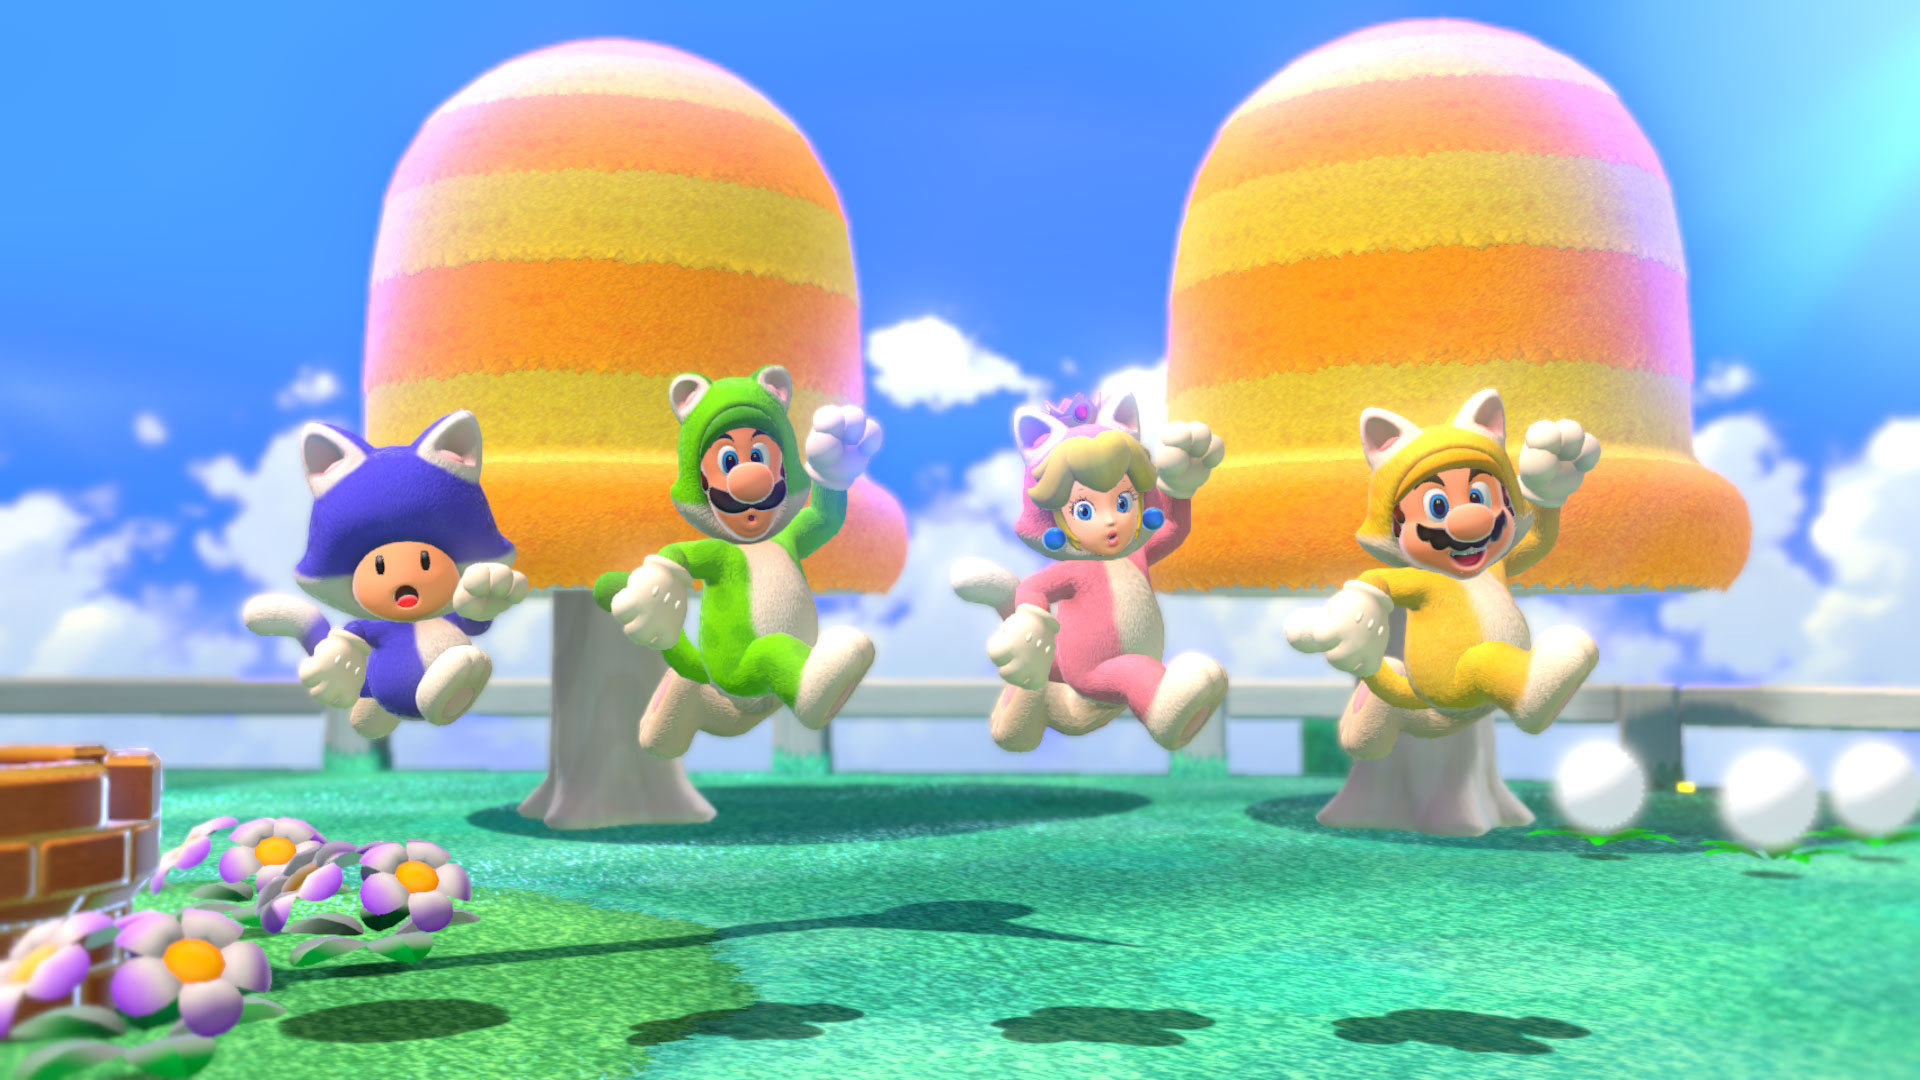 Super Mario 3D World, The First 3D Mario To Offer Simultaneous Multiplayer, Is Headed To The Switch February 12, With Brand New Content.